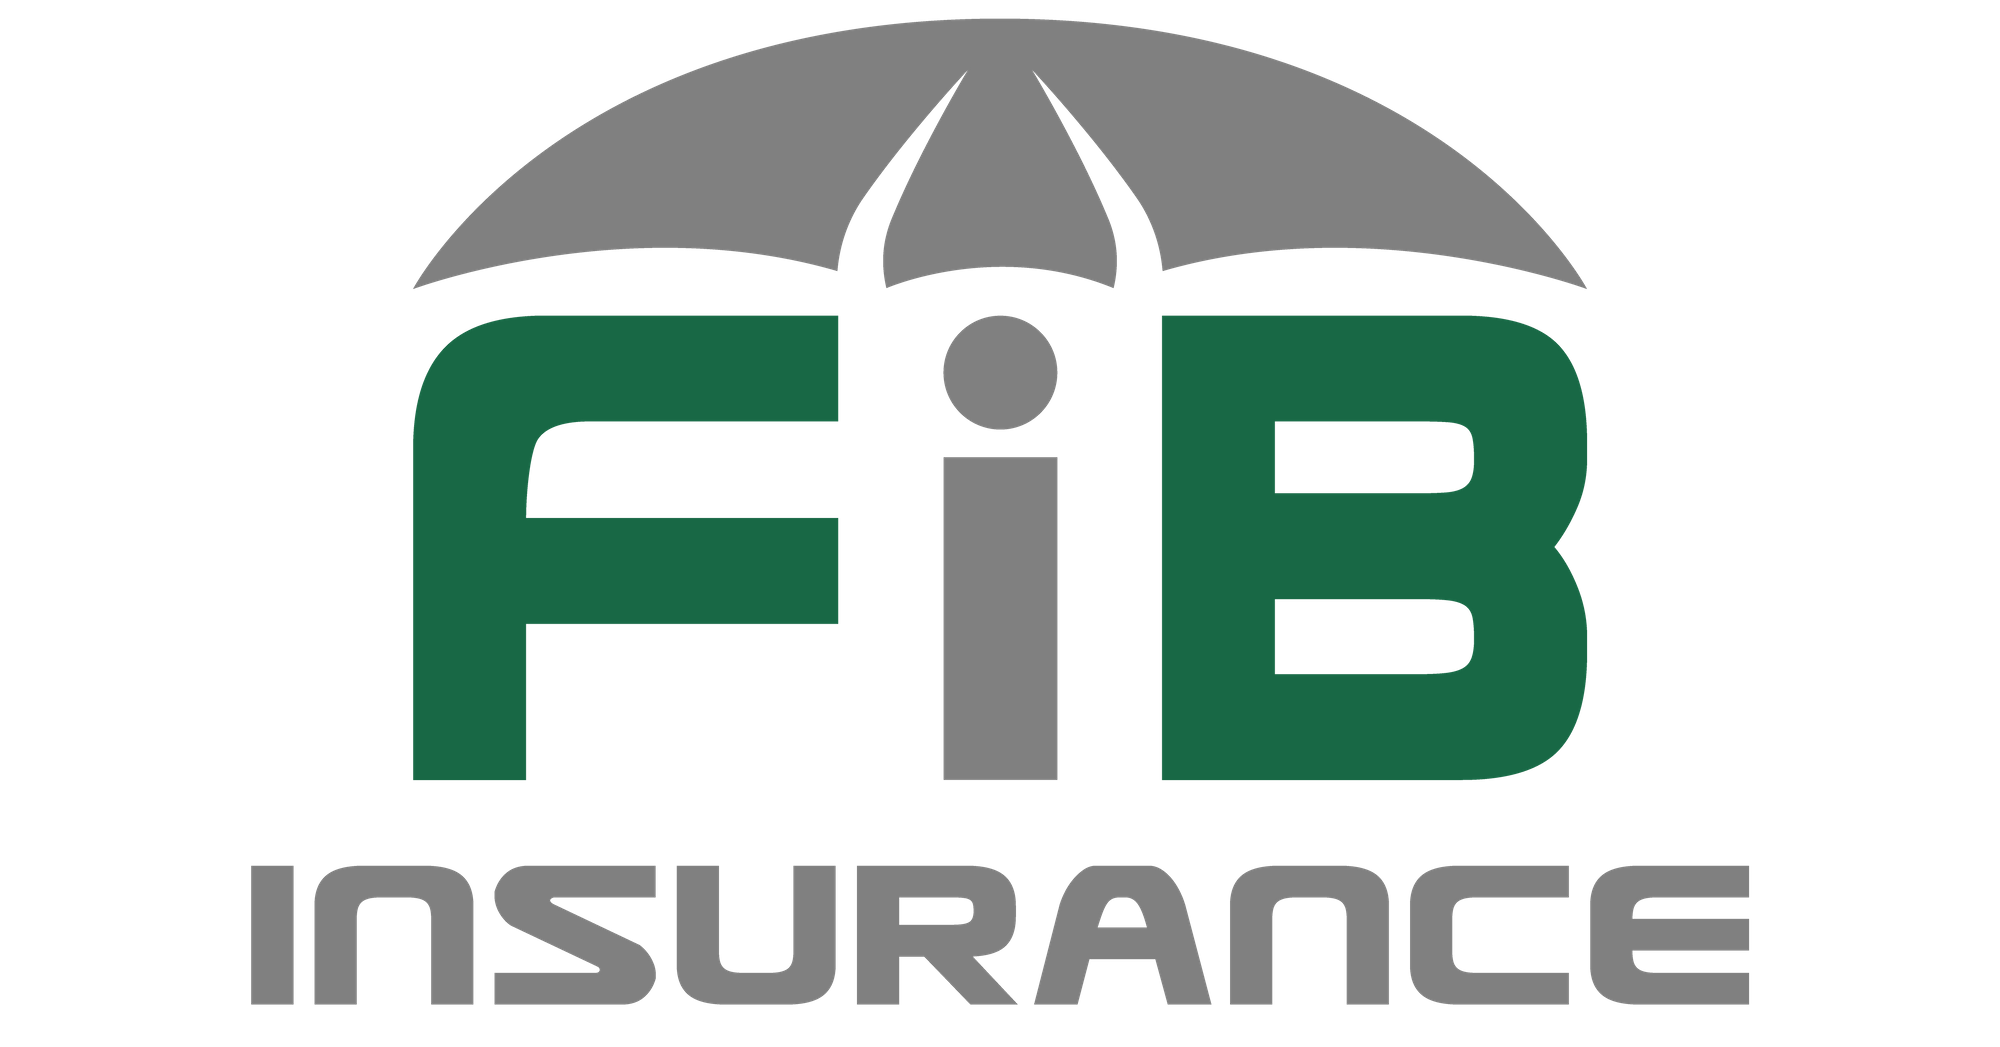 FiB final logo no slogan- psd.png